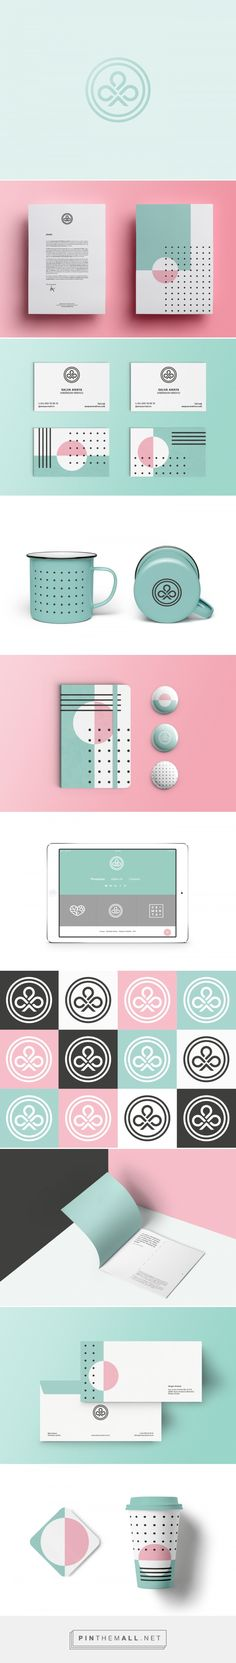 Anaya Creativo Personal Branding by Salva Anaya | Fivestar Branding Agency – Design and Branding Agency & Curated Inspiration Gallery